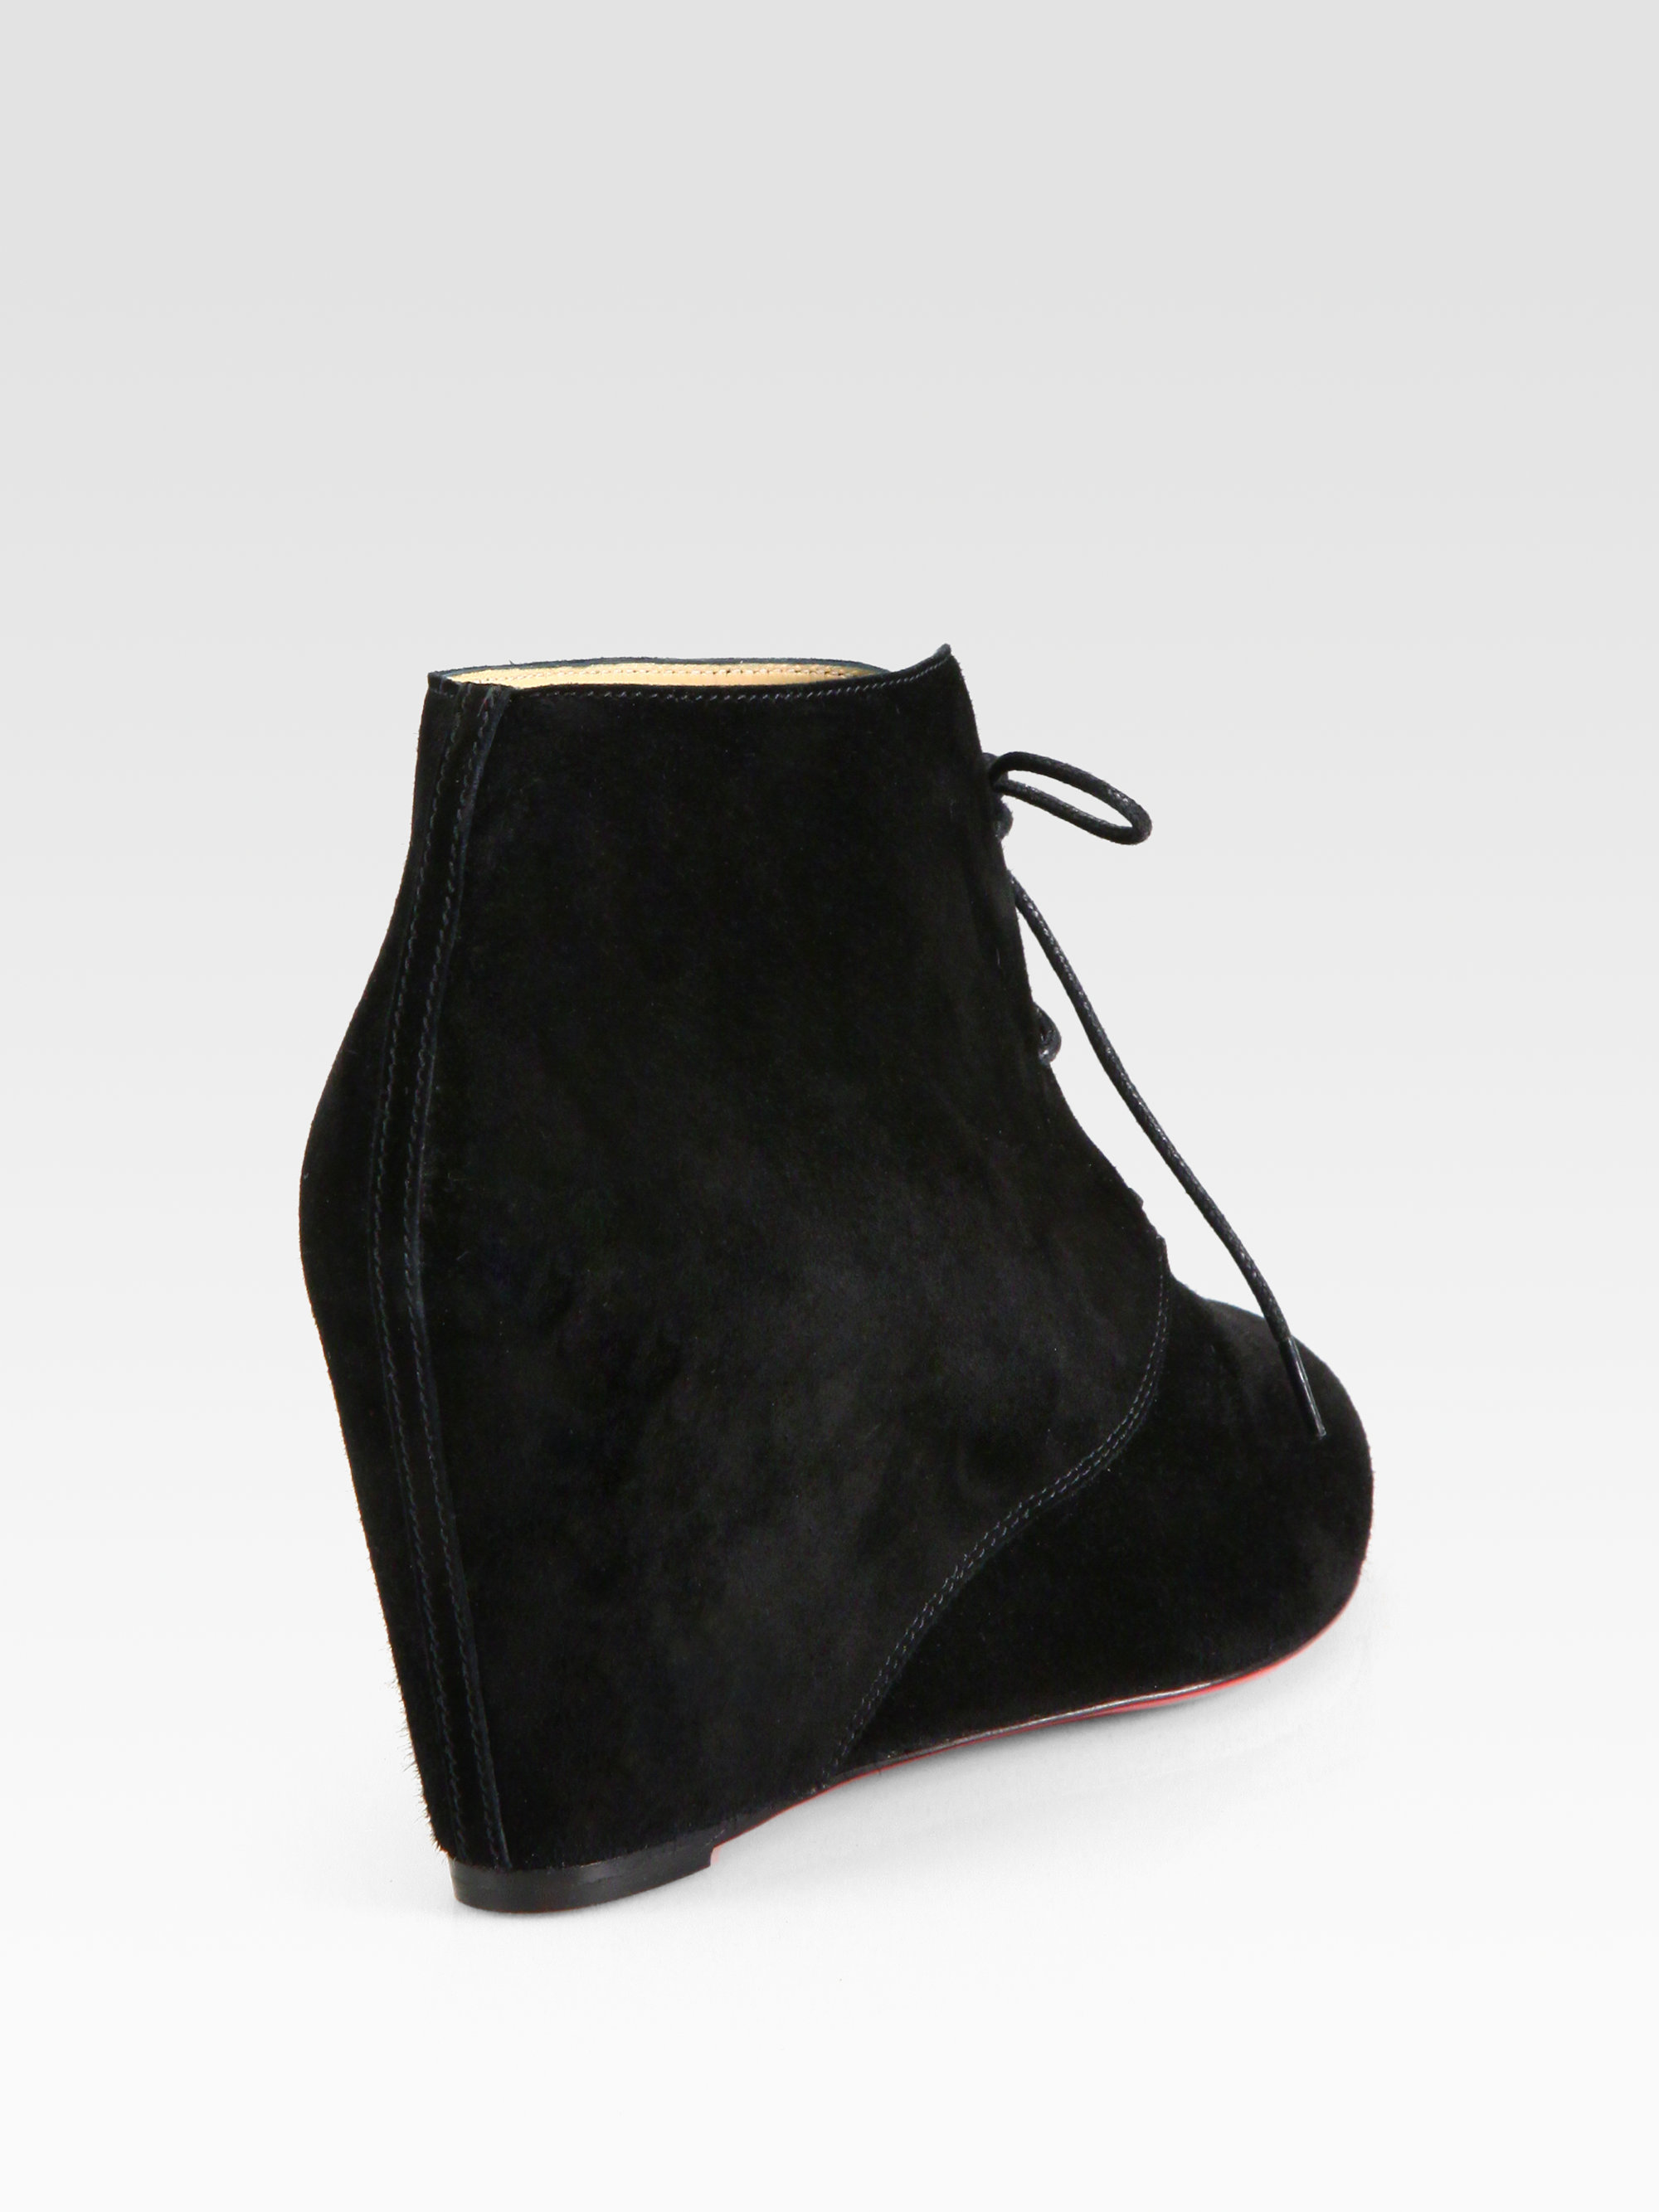 Christian louboutin Laceup Suede Wedge Ankle Boots in Black | Lyst